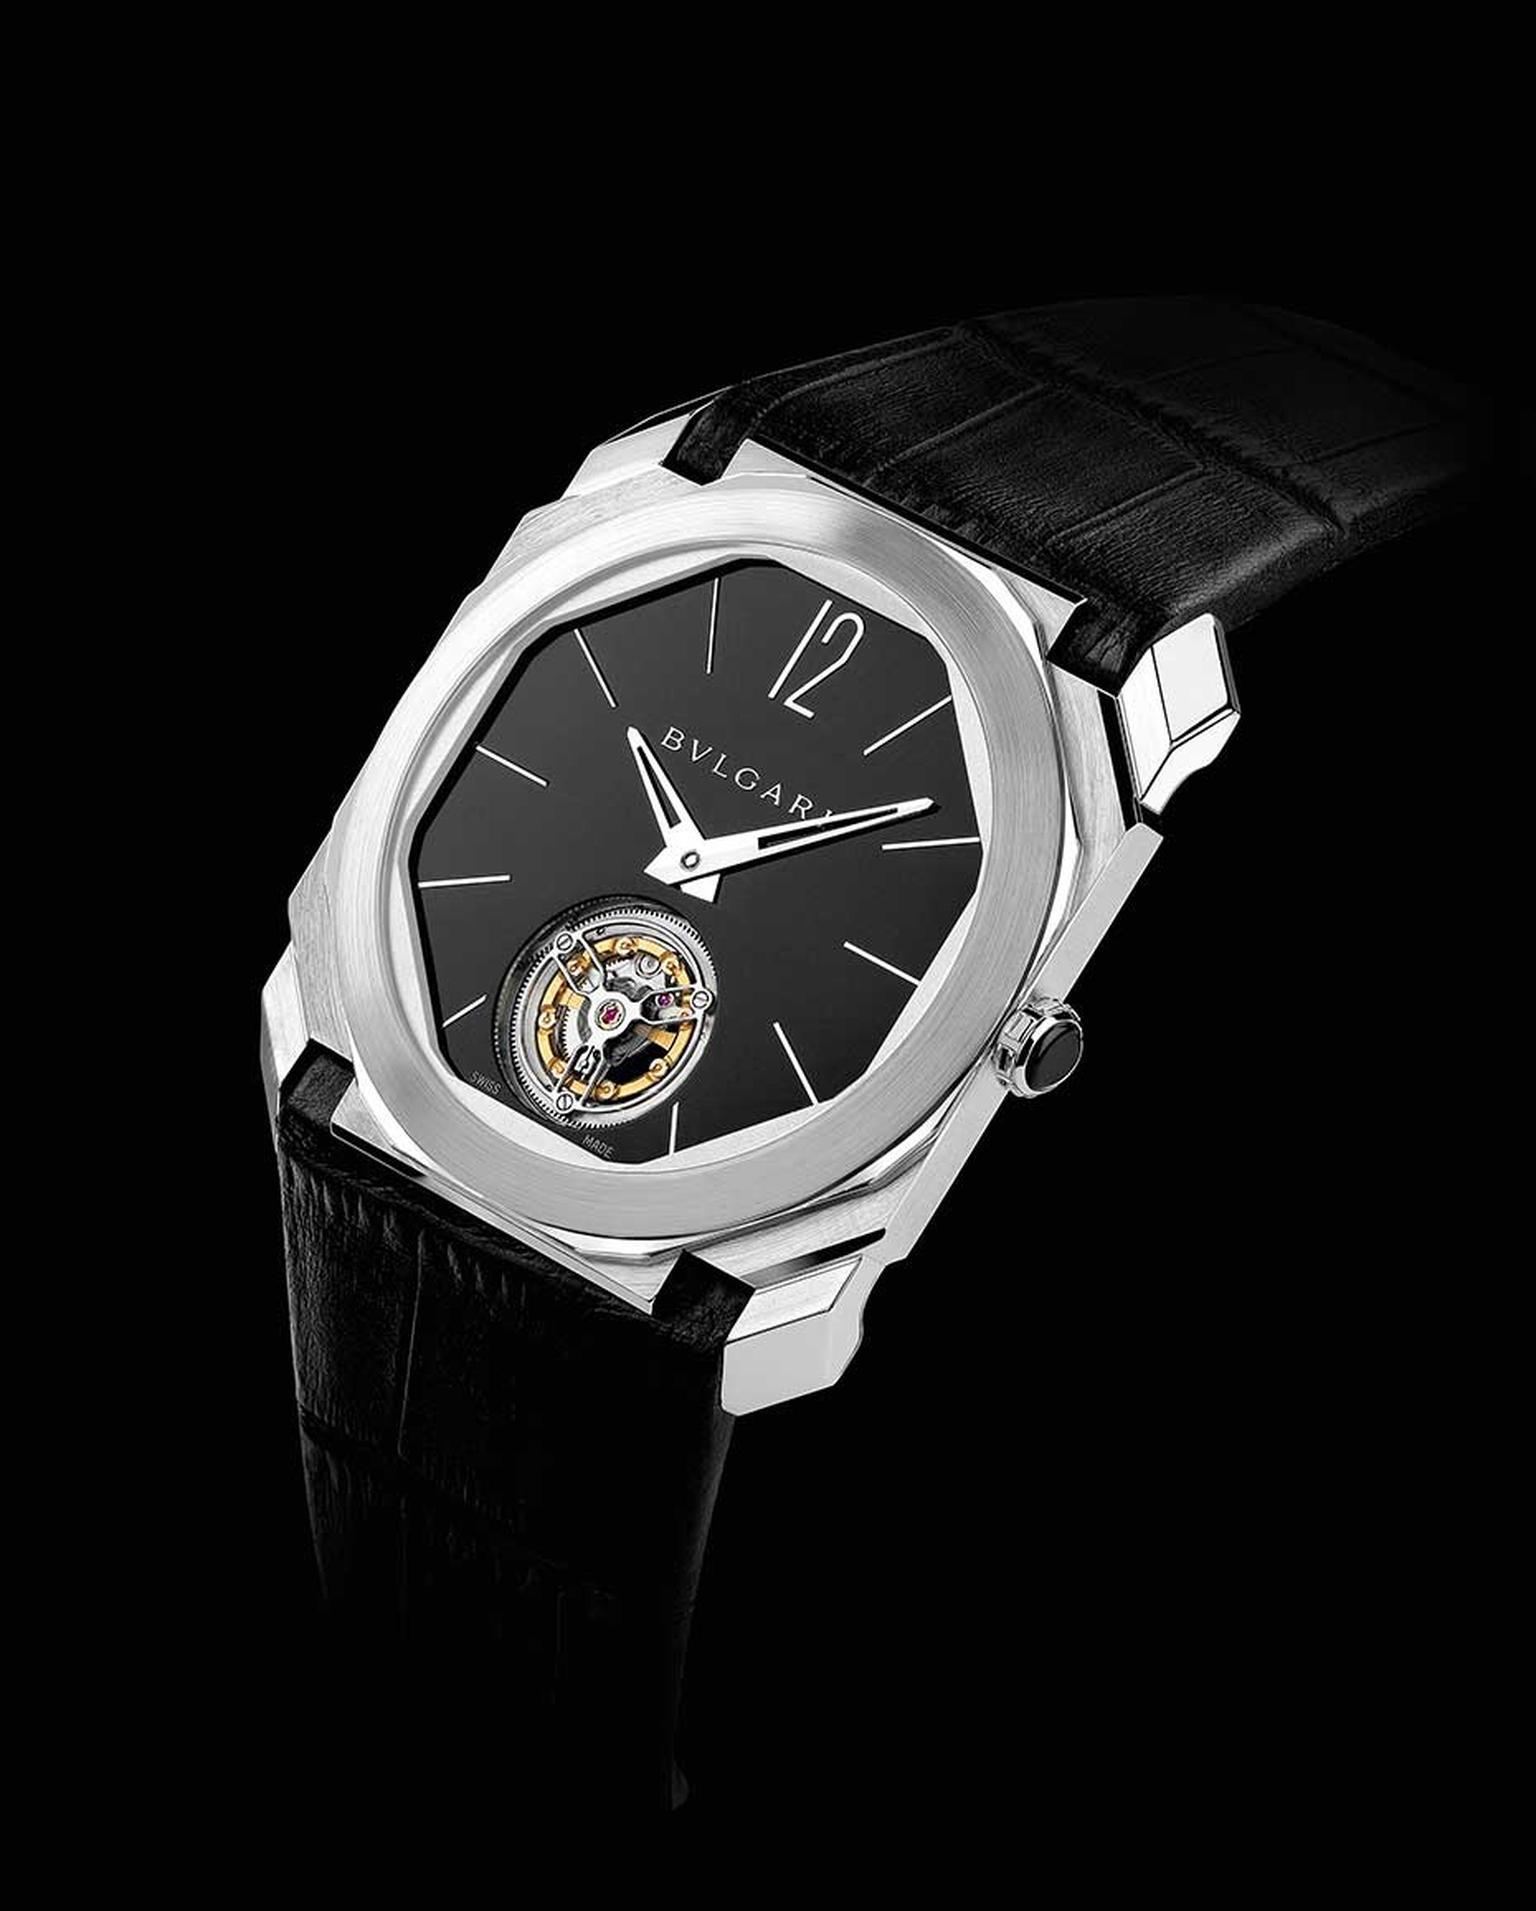 Try on Bulgari's incredibly thin Octo Finissimo Tourbillon watch - the world's thinnest tourbillon - at the SIAR Madrid.